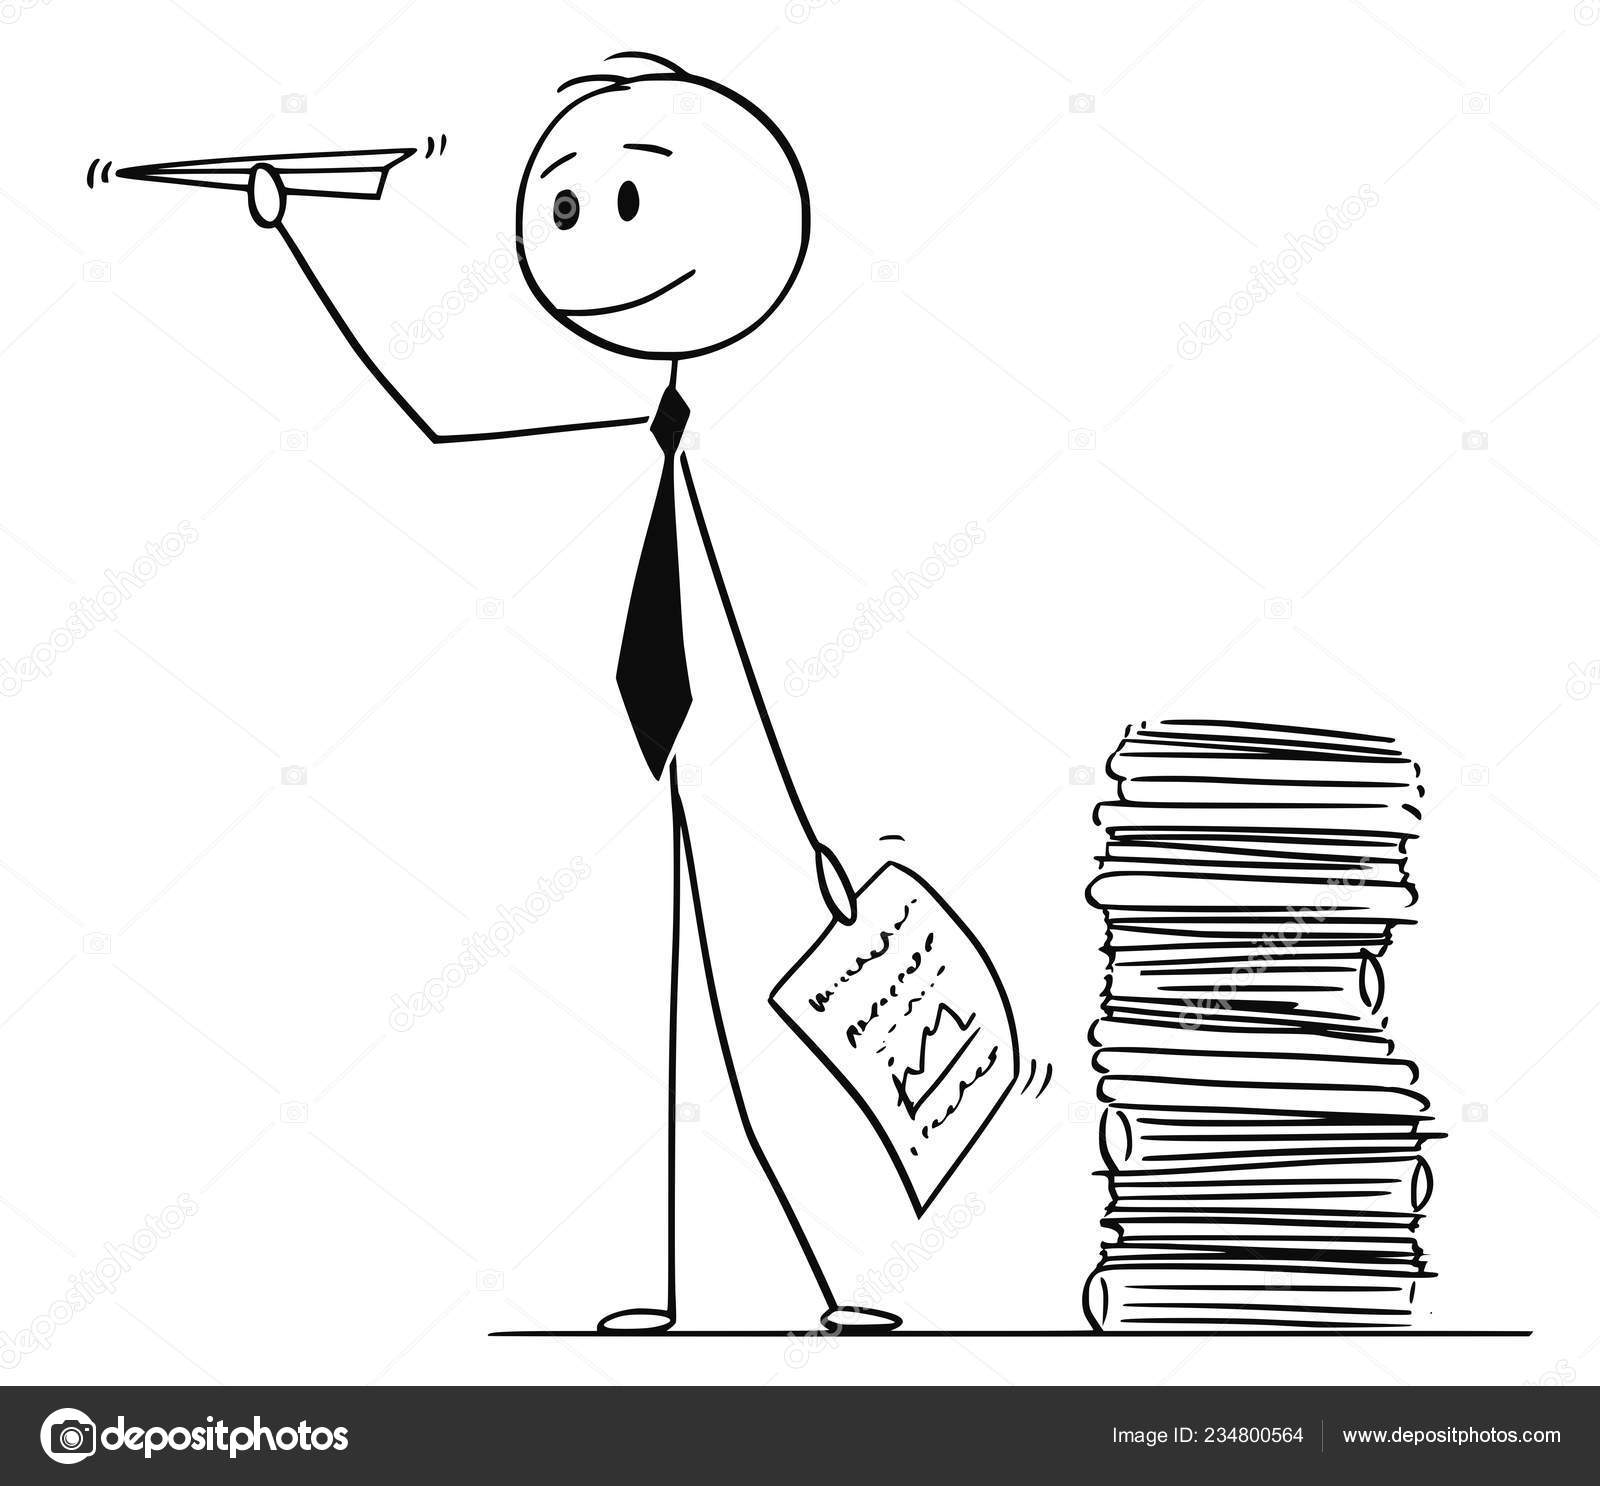 Cartoon Of Businessman Throwing Paper Airplane Made From Office